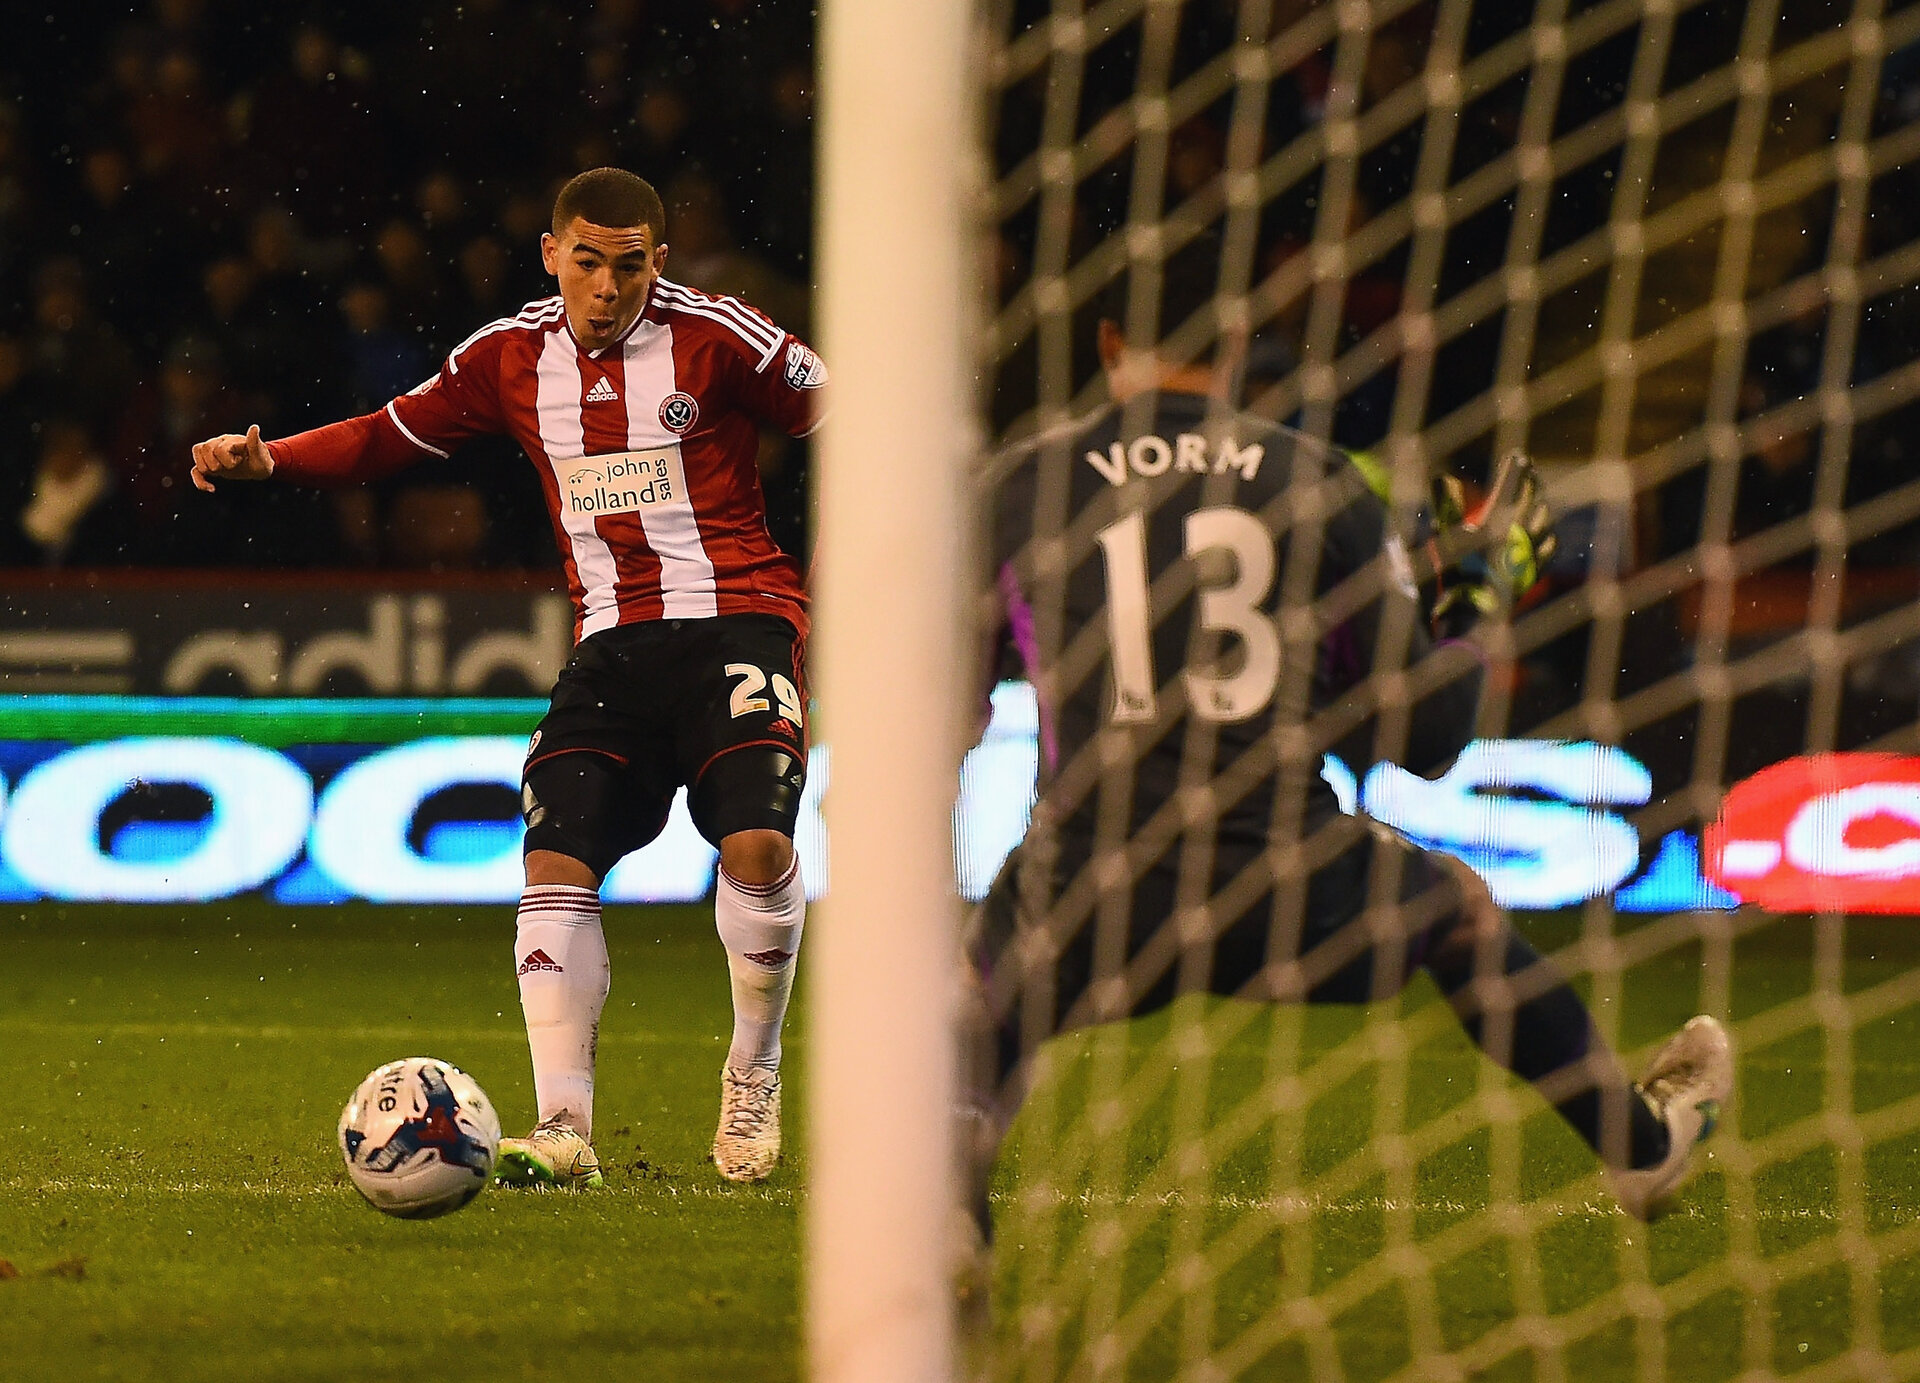 SHEFFIELD, ENGLAND - JANUARY 28: Che Adams of Sheffield United scores his first goal during the Capital One Cup Semi-Final Second Leg match between Sheffield United and Tottenham Hotspur at Bramall Lane on January 28, 2015 in Sheffield, England.  (Photo by Laurence Griffiths/Getty Images)